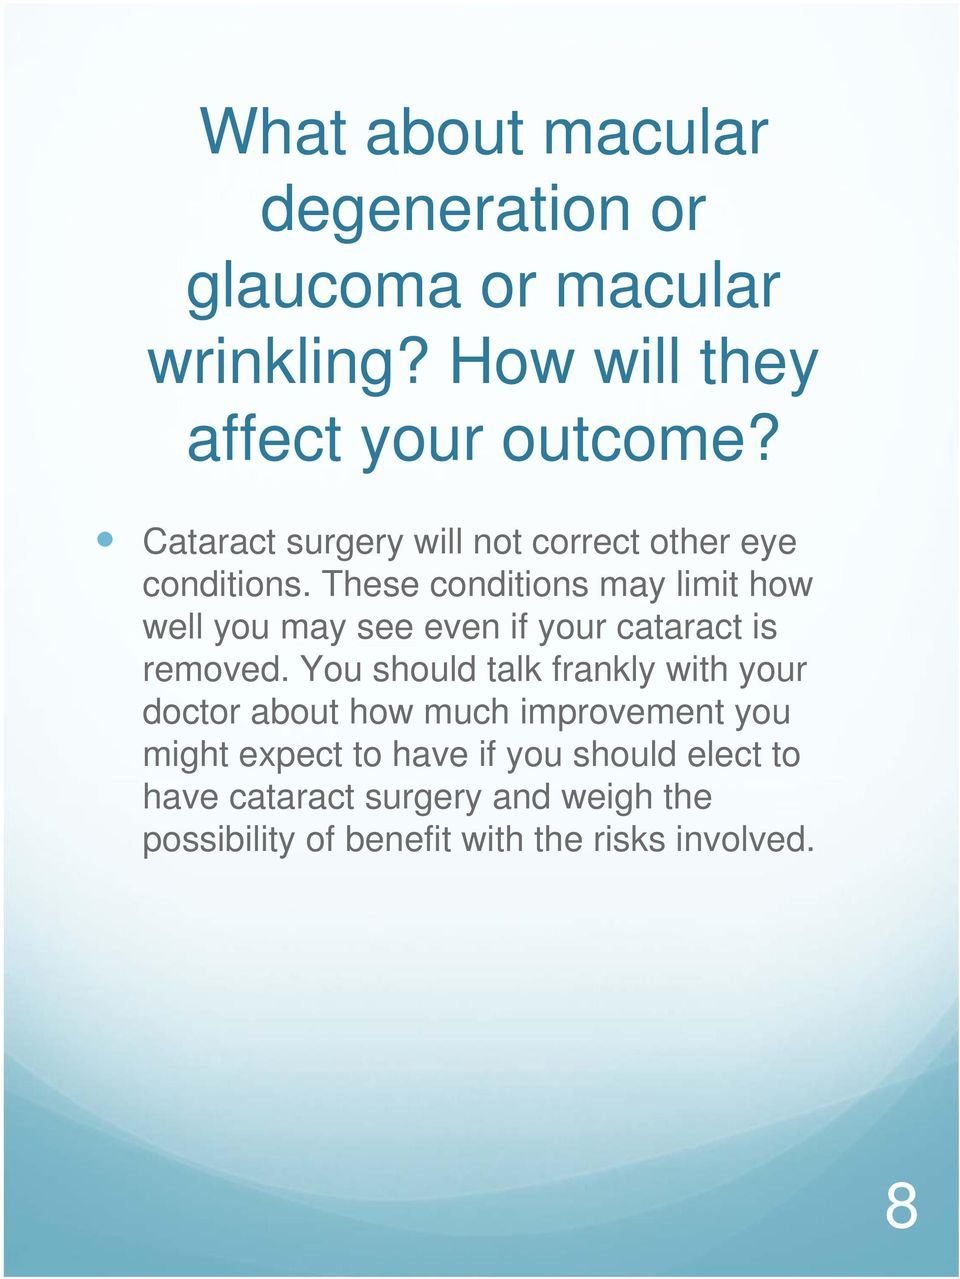 These conditions may limit how well you may see even if your cataract is removed.